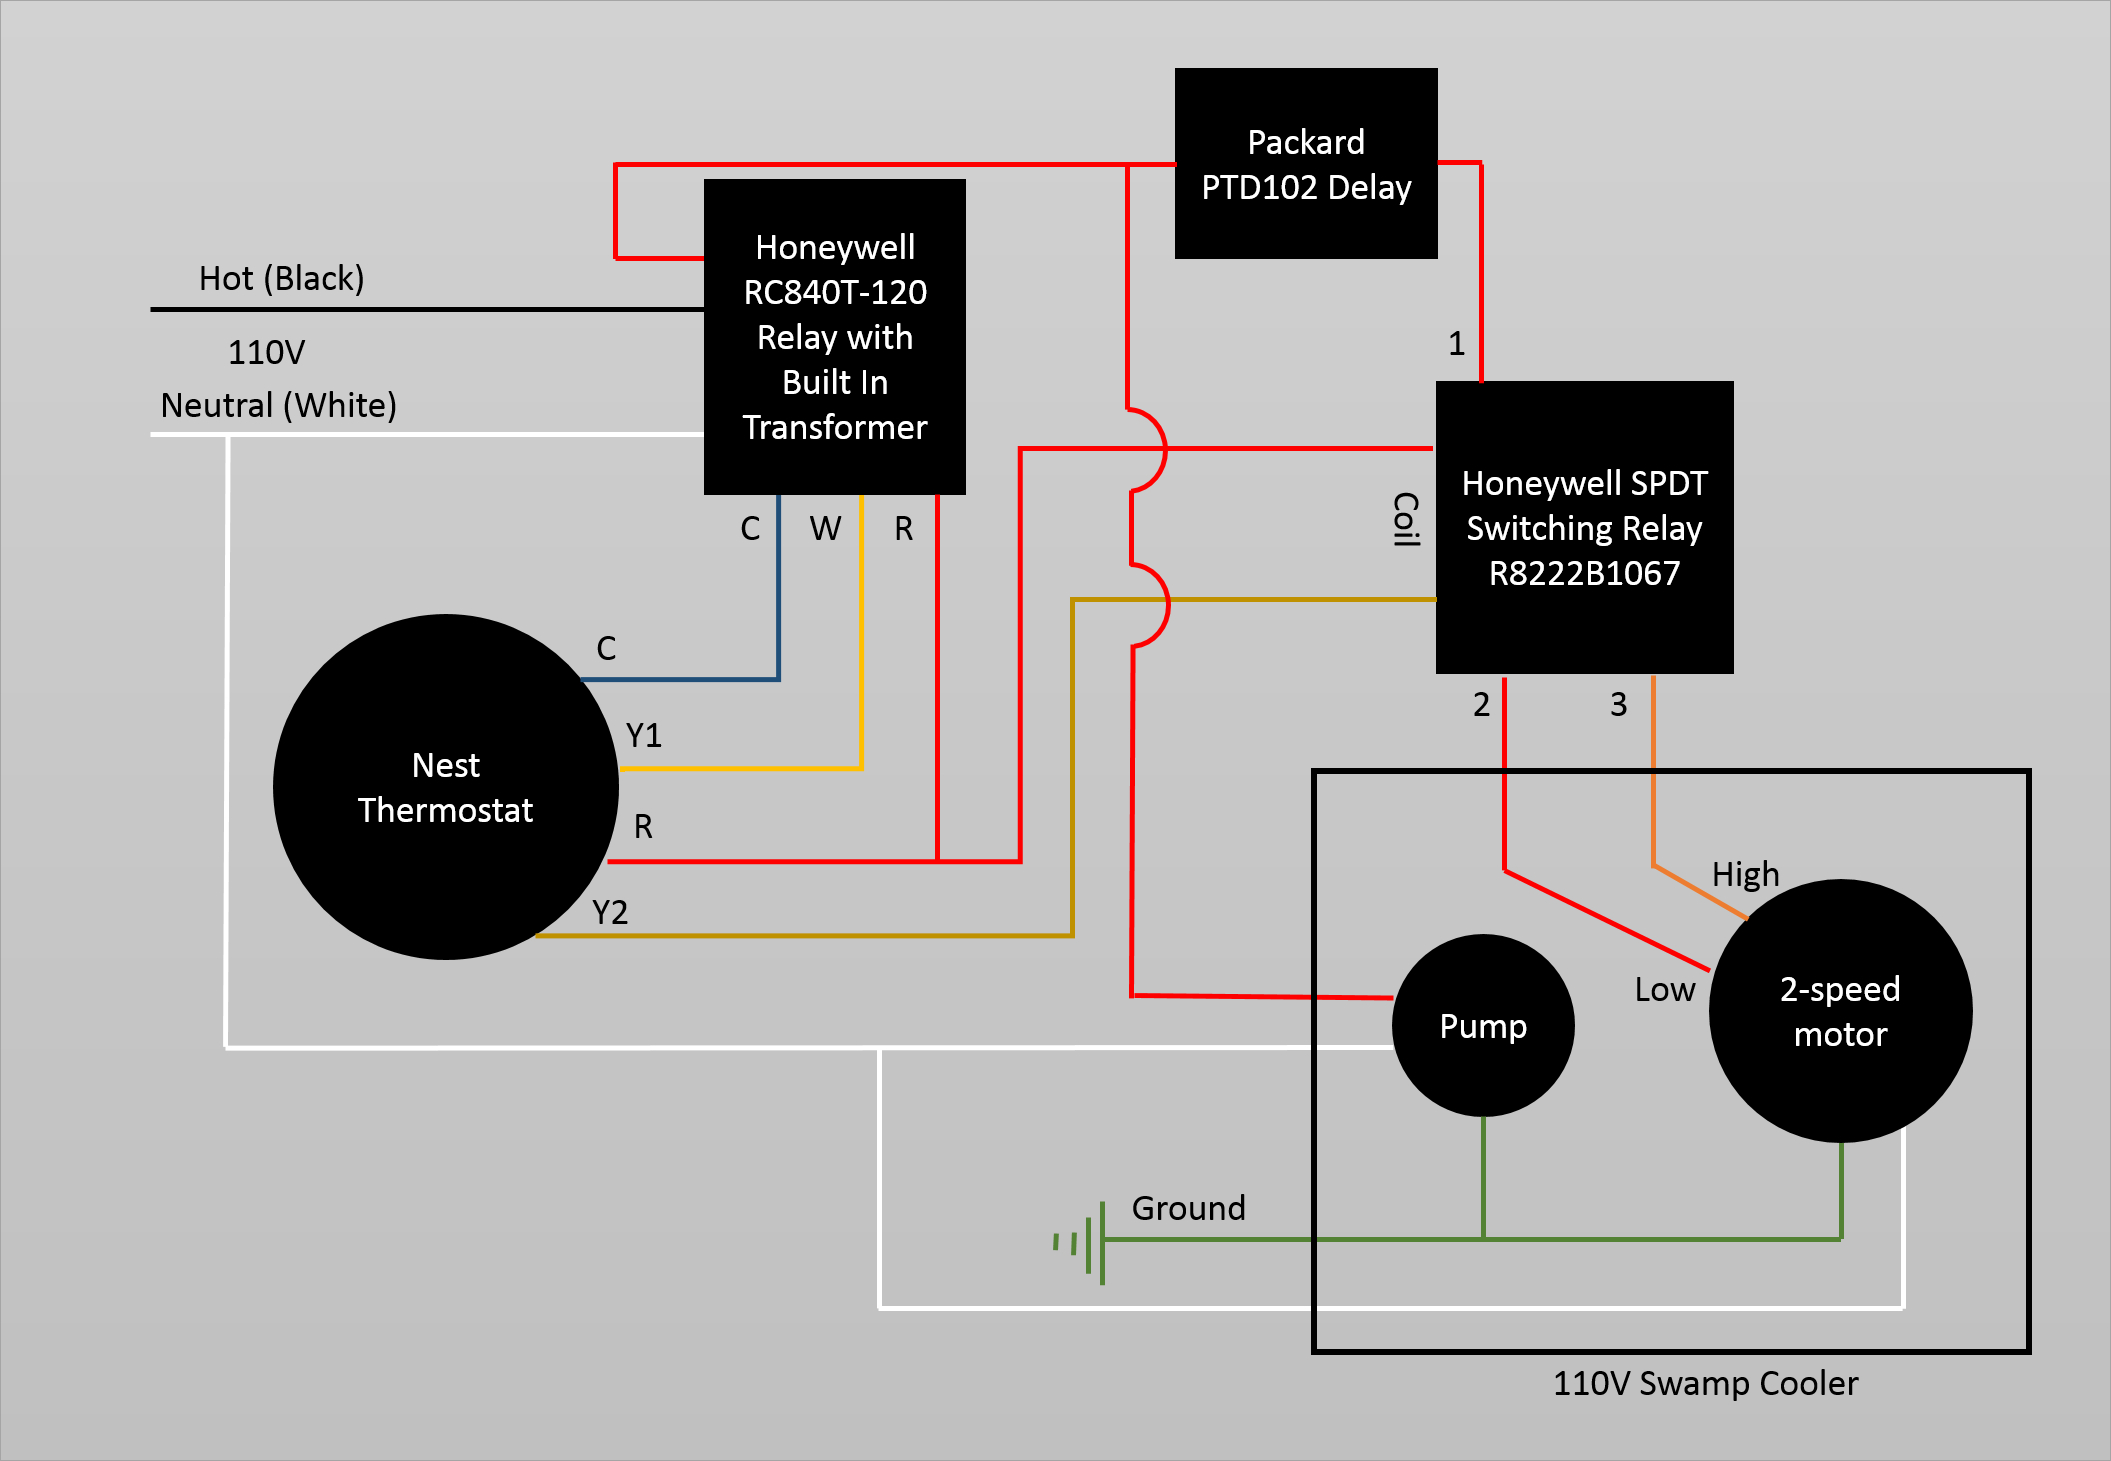 Wiring - Controlling 110V Swamp Cooler Using Nest Thermostat - Home - Nest Humidifier Wiring Diagram With No C Terminal